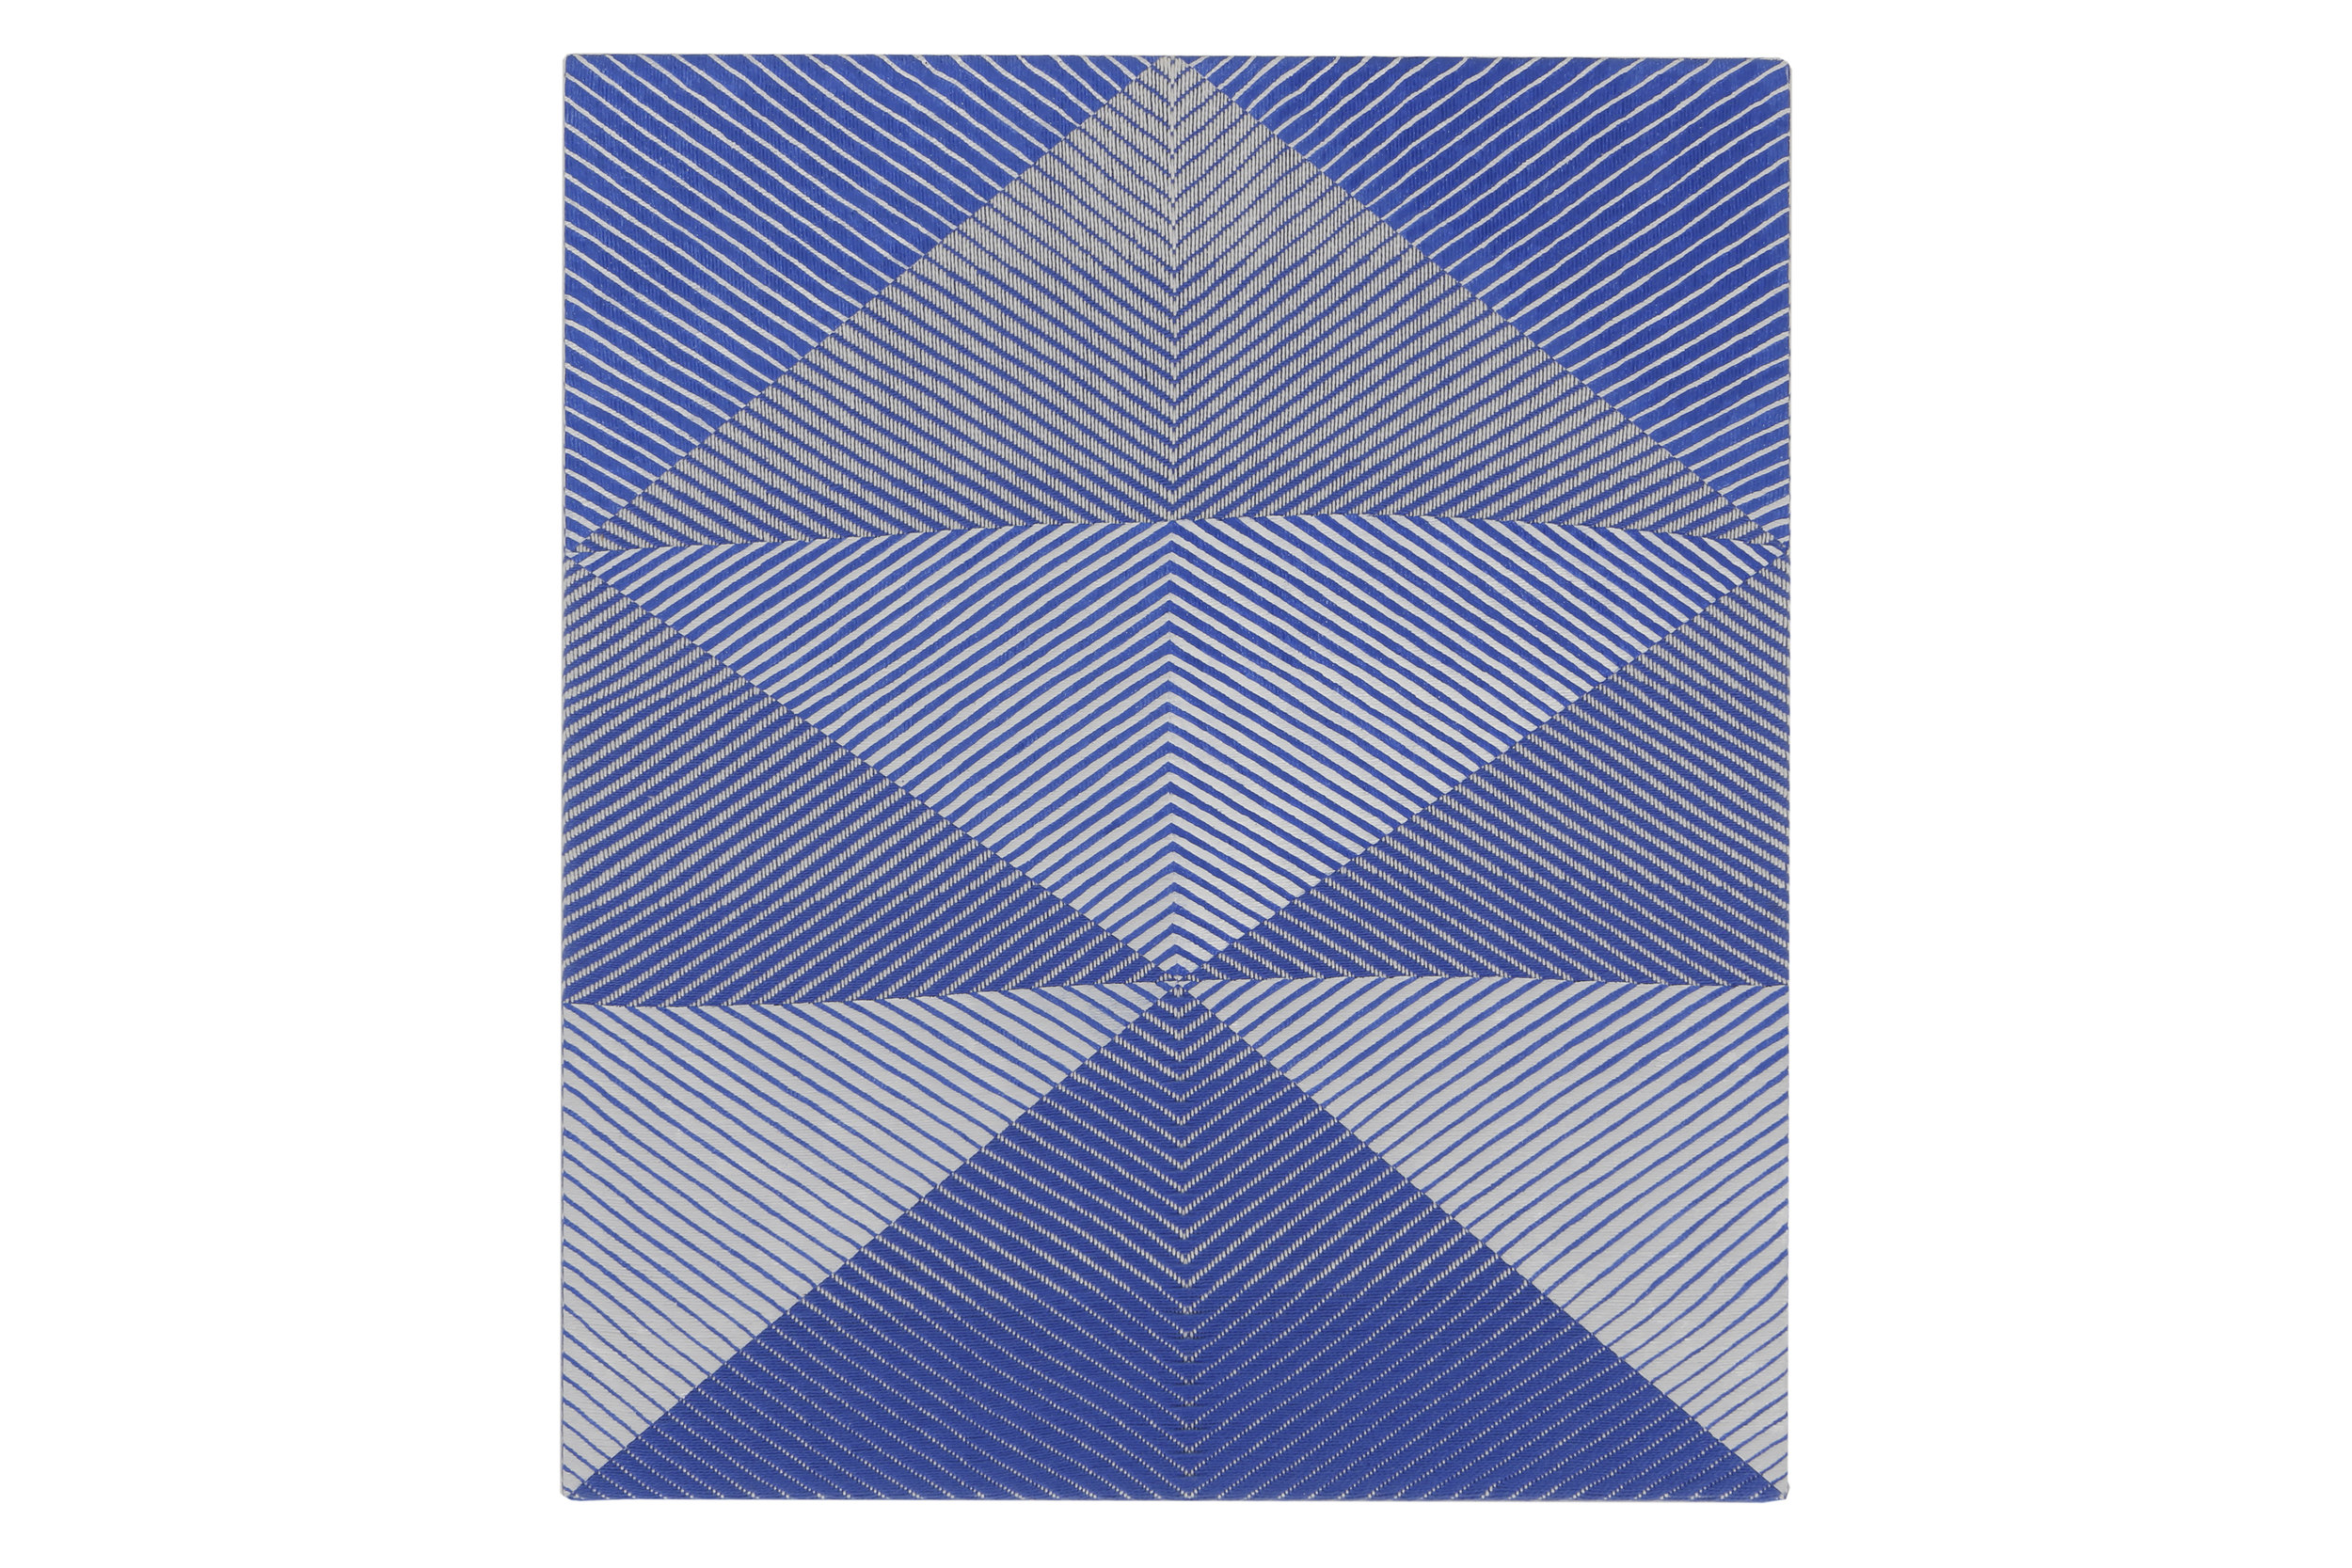 Samantha Bittman    Untitled   Acrylic on hand-woven textile  20 x 16 in (50.8 x 40.6 cm)